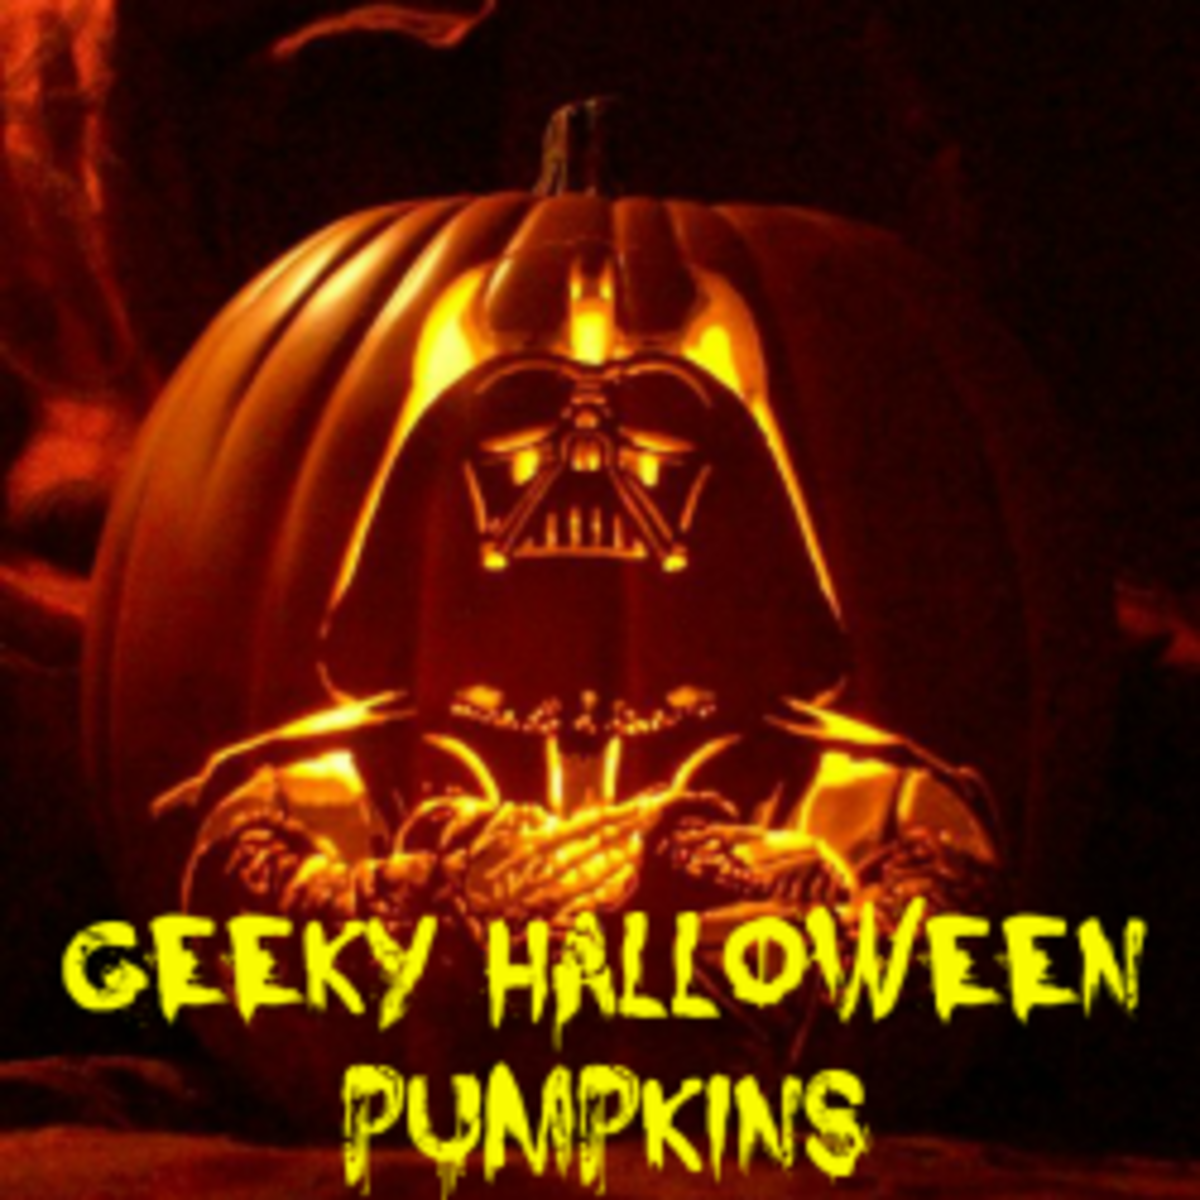 Geeky Halloween Pumpkins - Carvings Beyond Your Wildest Imagination